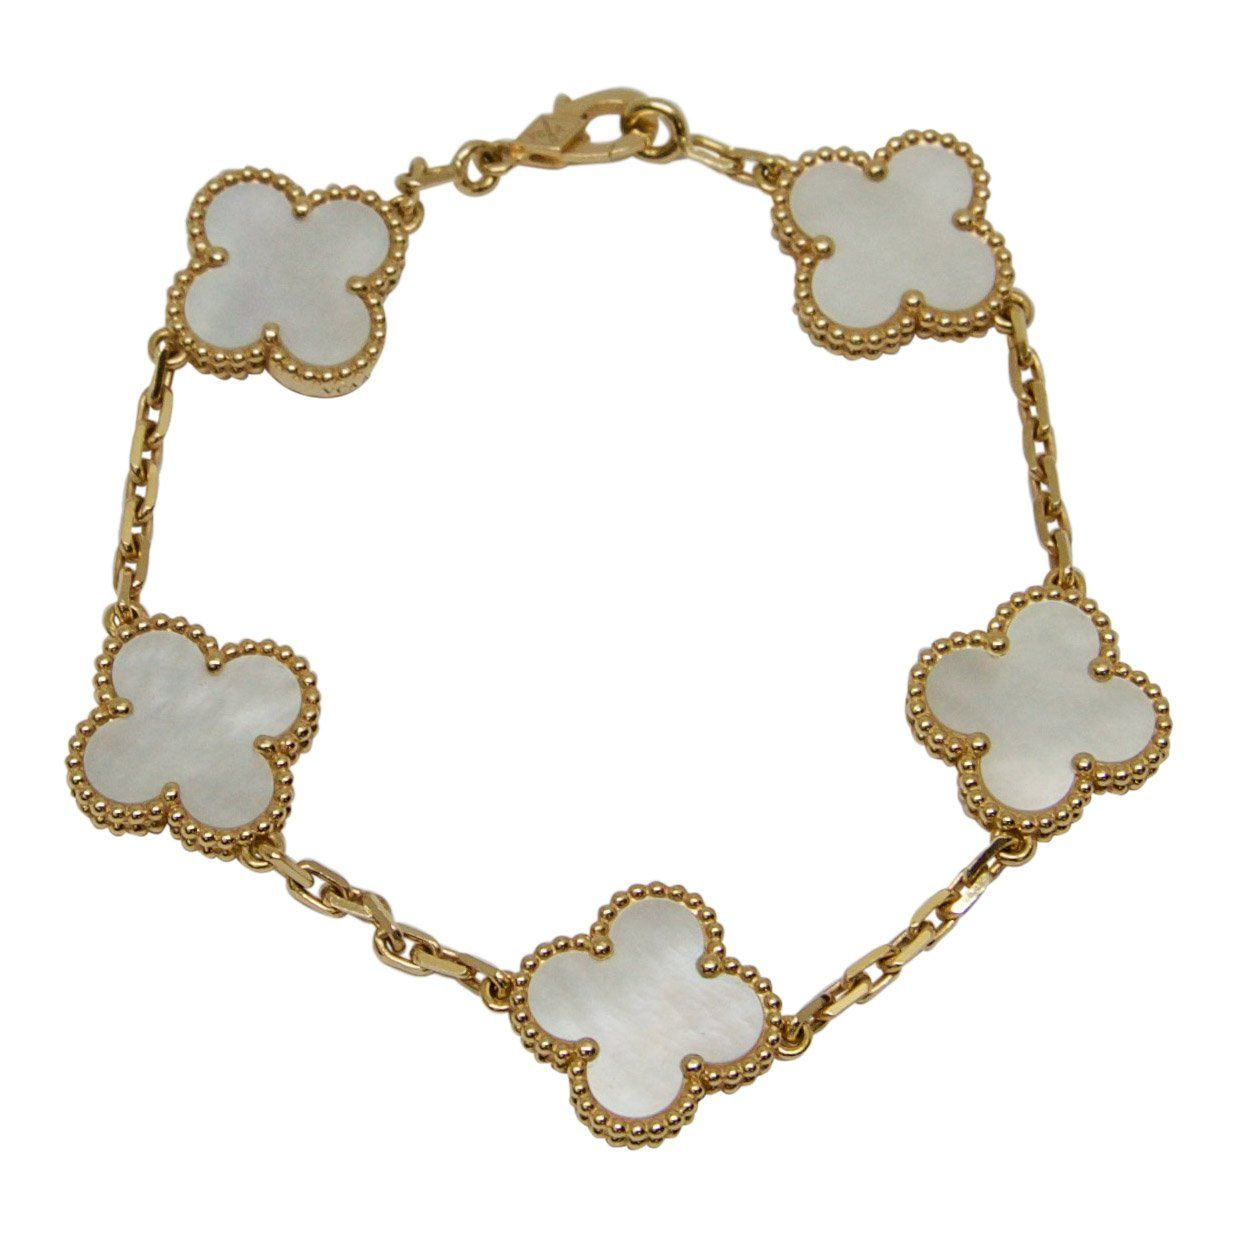 0a91686d30 Van Cleef   Arpels Vintage Alhambra Bracelet With Mother Of Pearl -  Bracelets ...